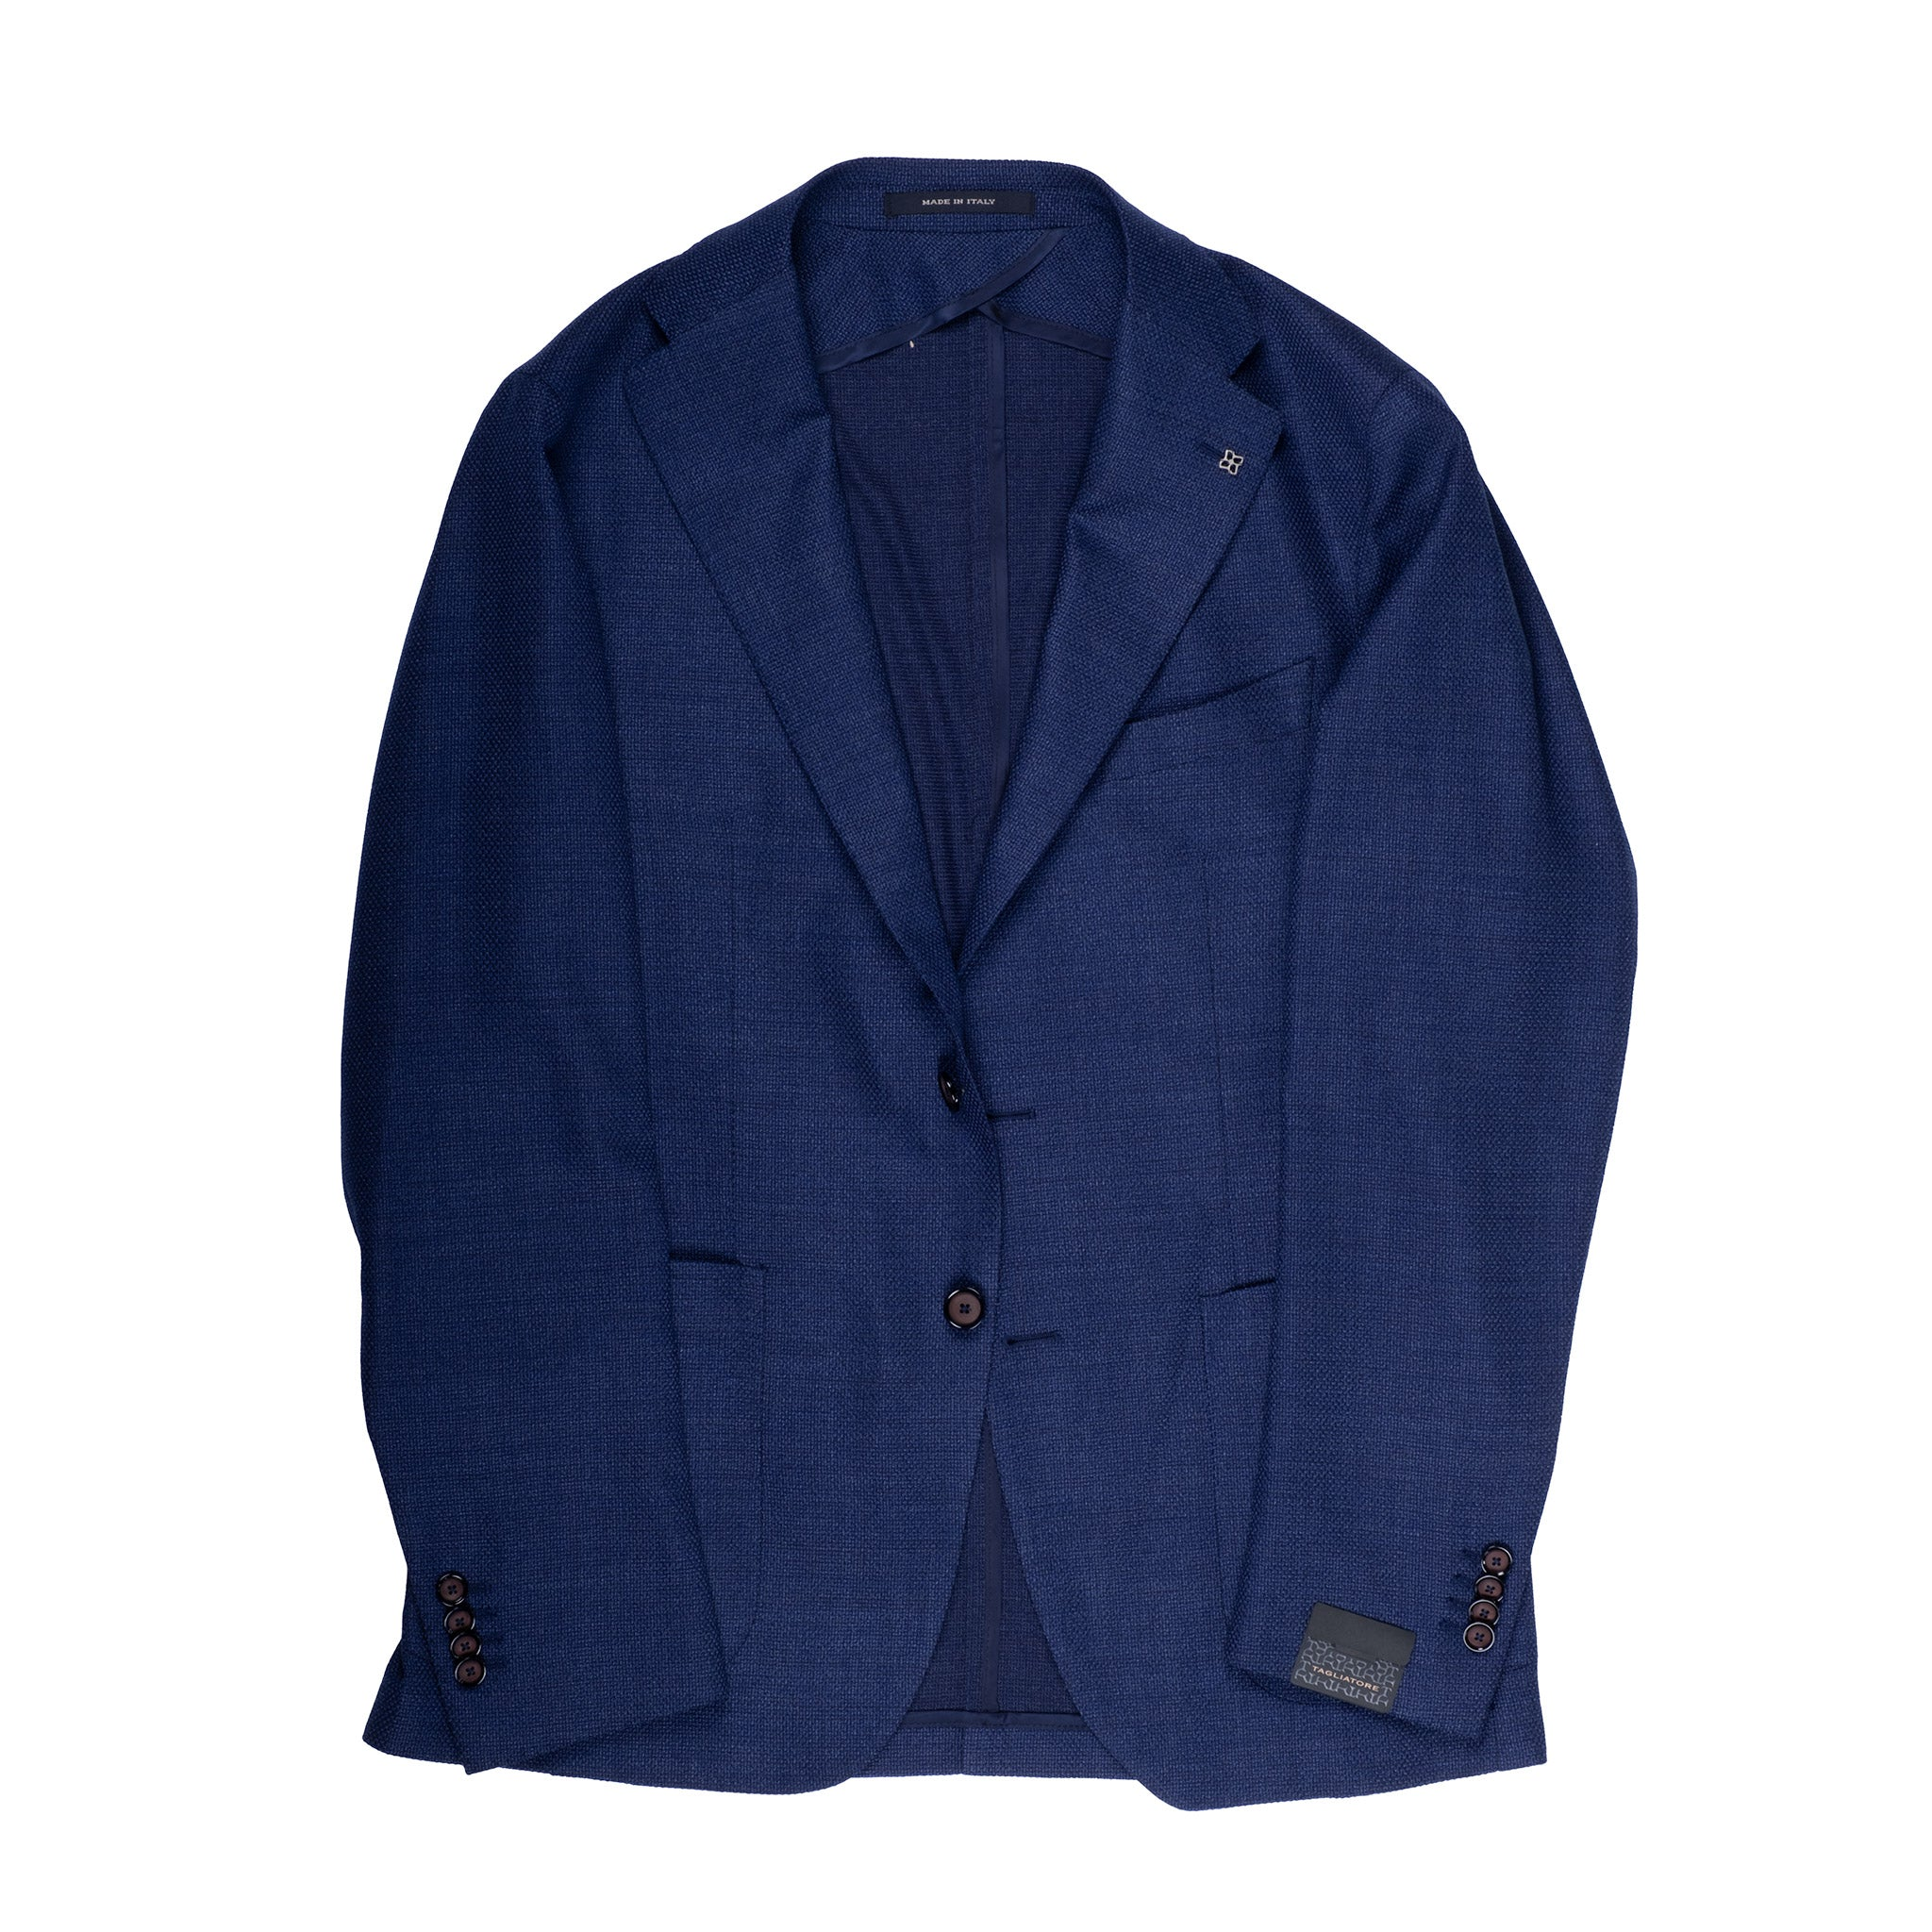 Blue Textured Blazer